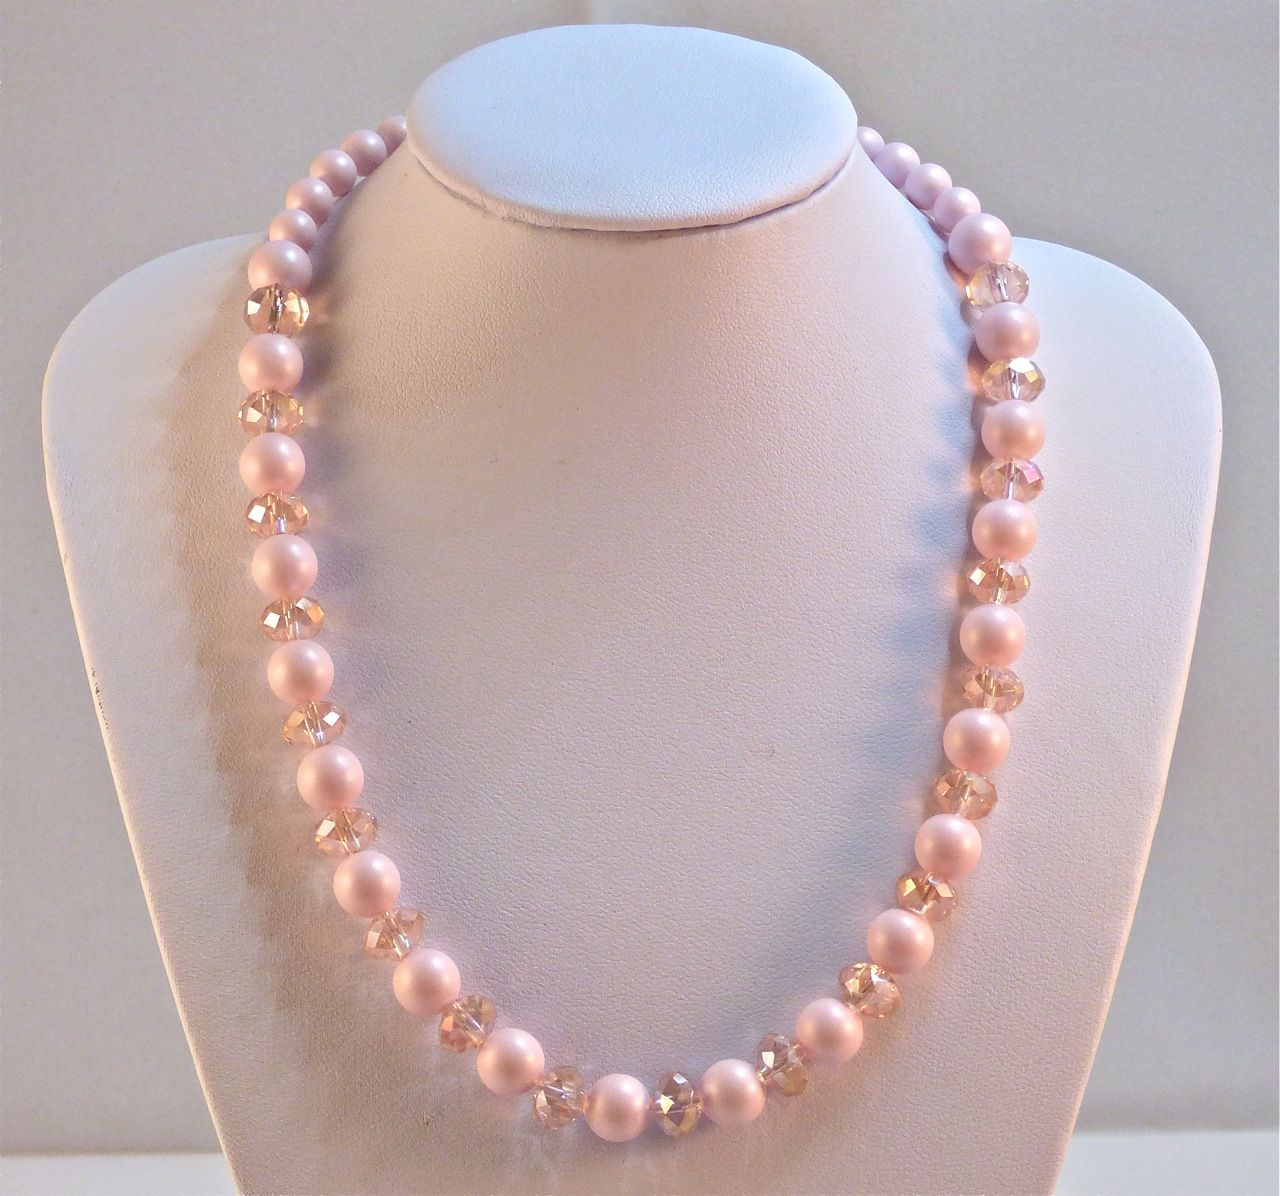 fullxfull silk pastel necklace findings lnlc pearl sterling listing on knotted large silver with il pearls choker hand